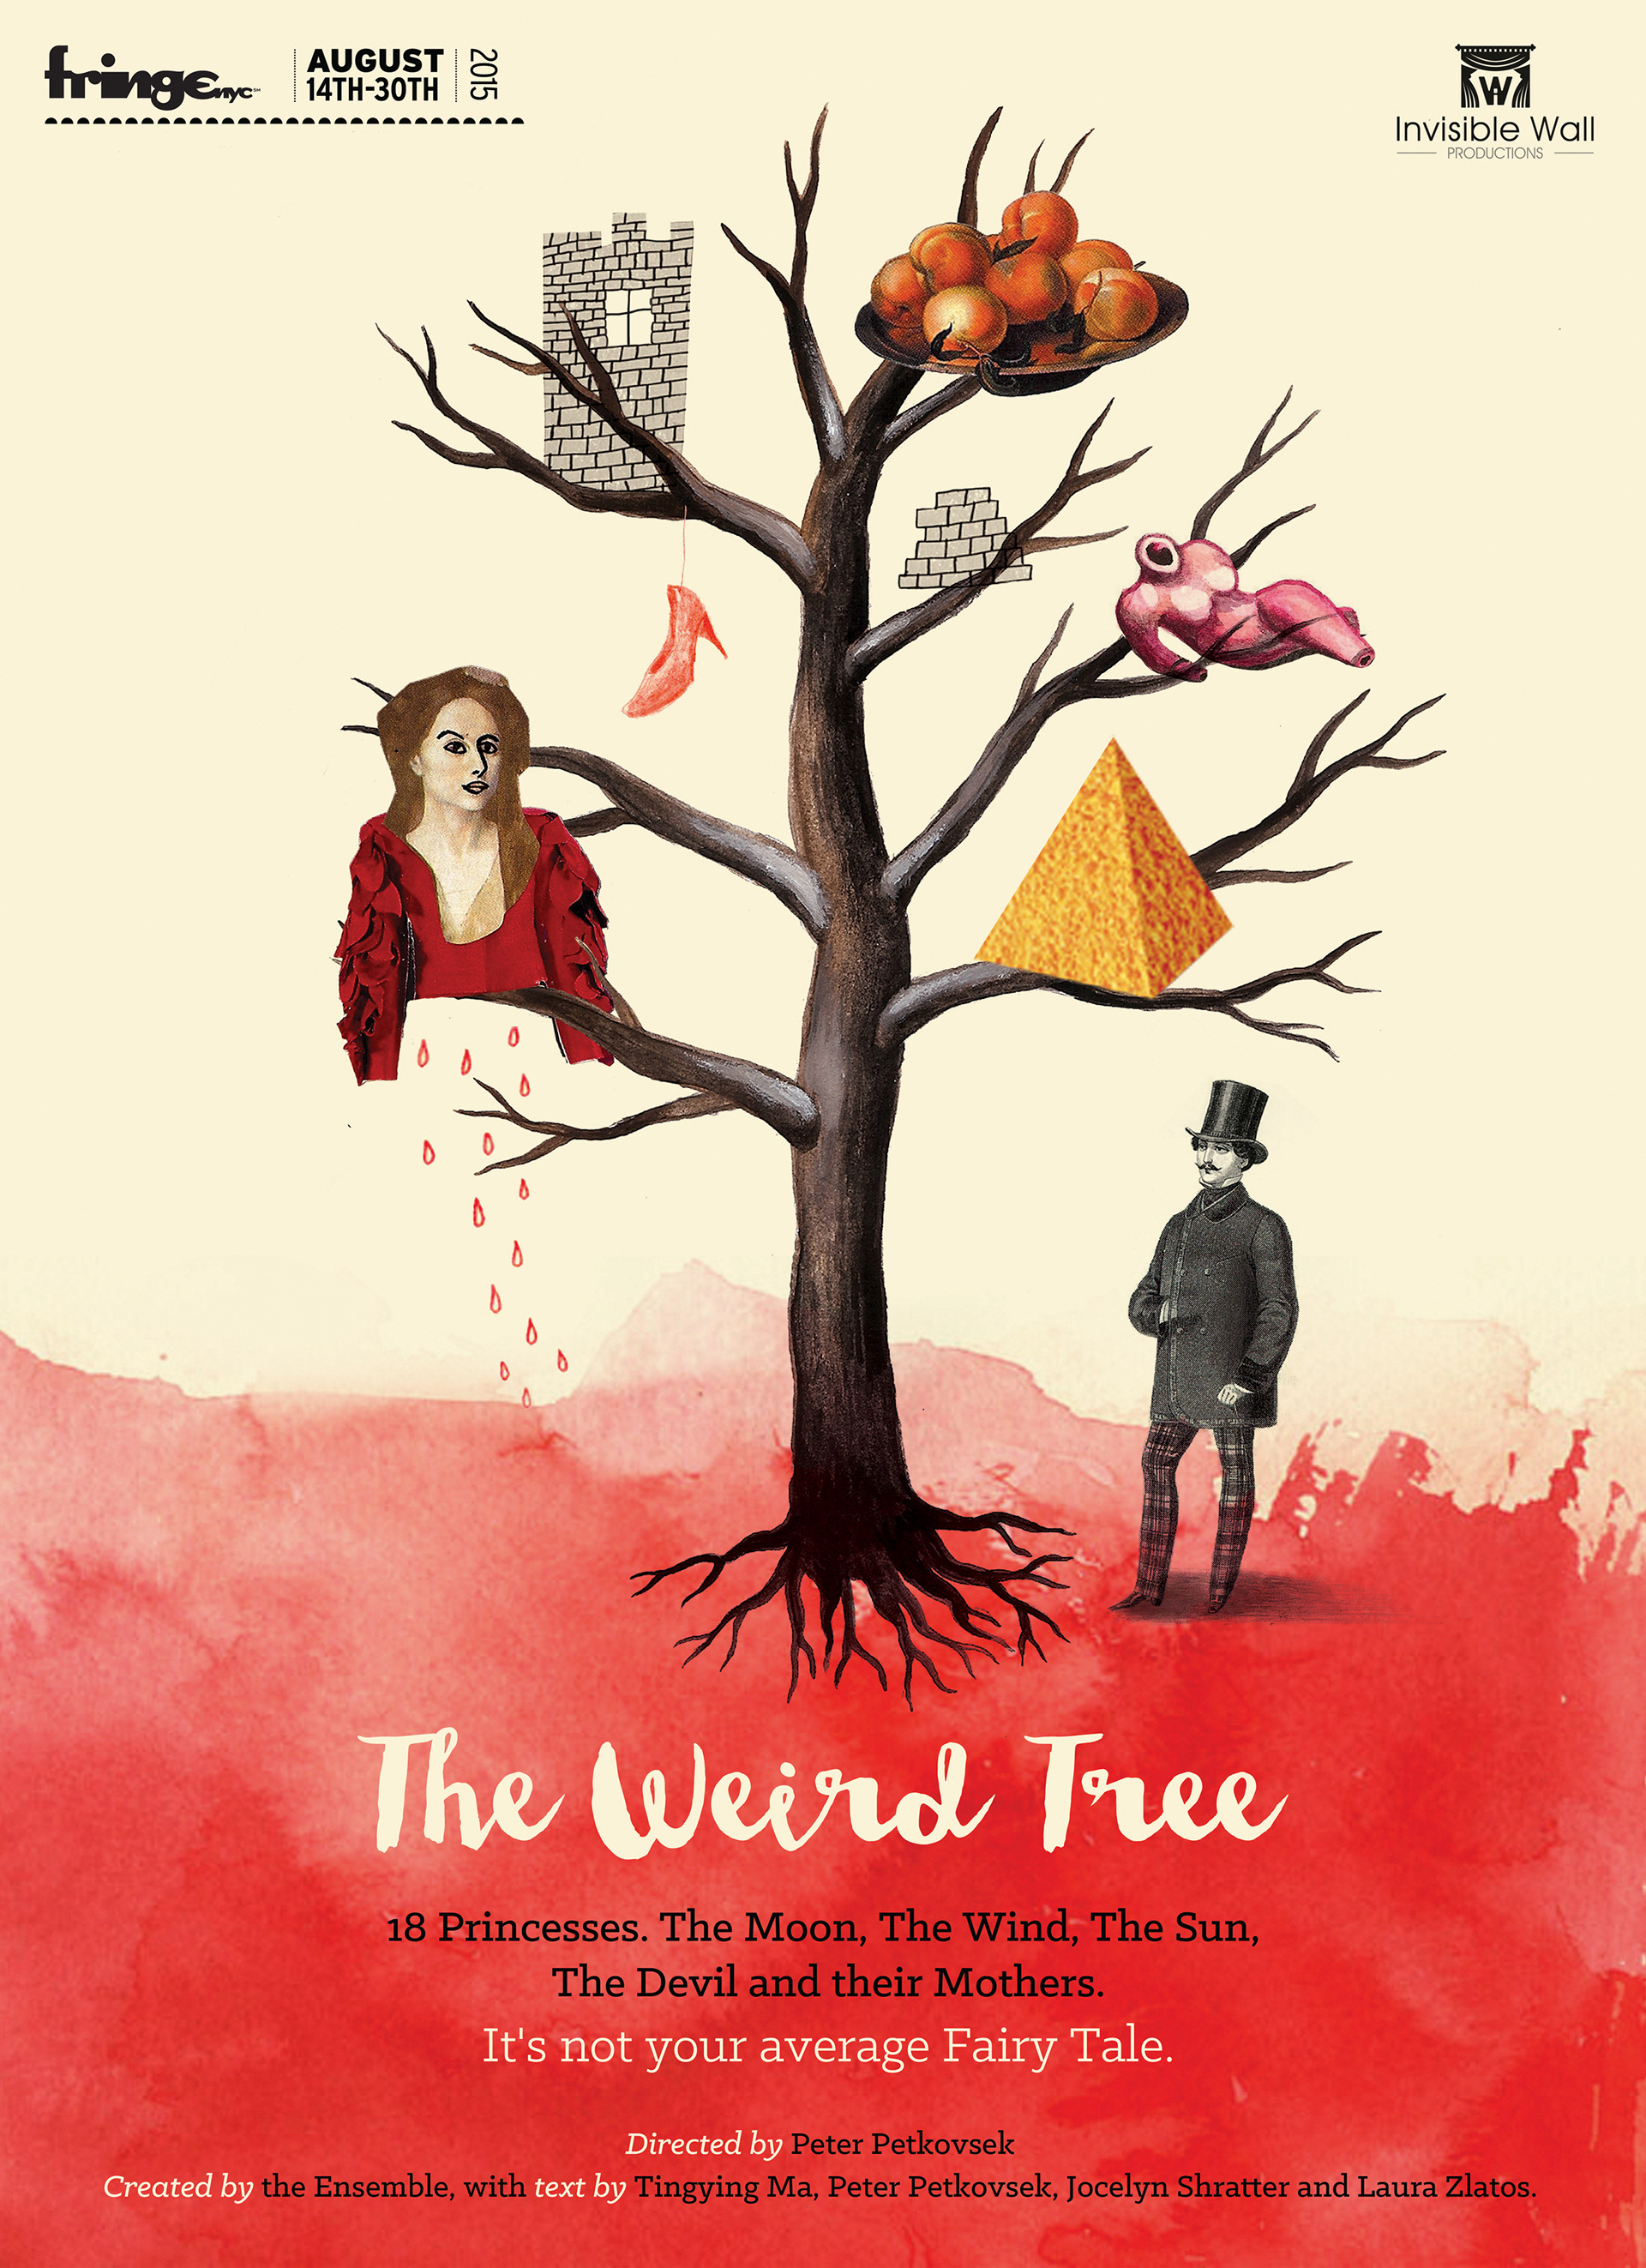 Poster For A Theatre Play The Weird Tree Presented As Part Of New York International Fringe Festival Man Climbs To Win Princess